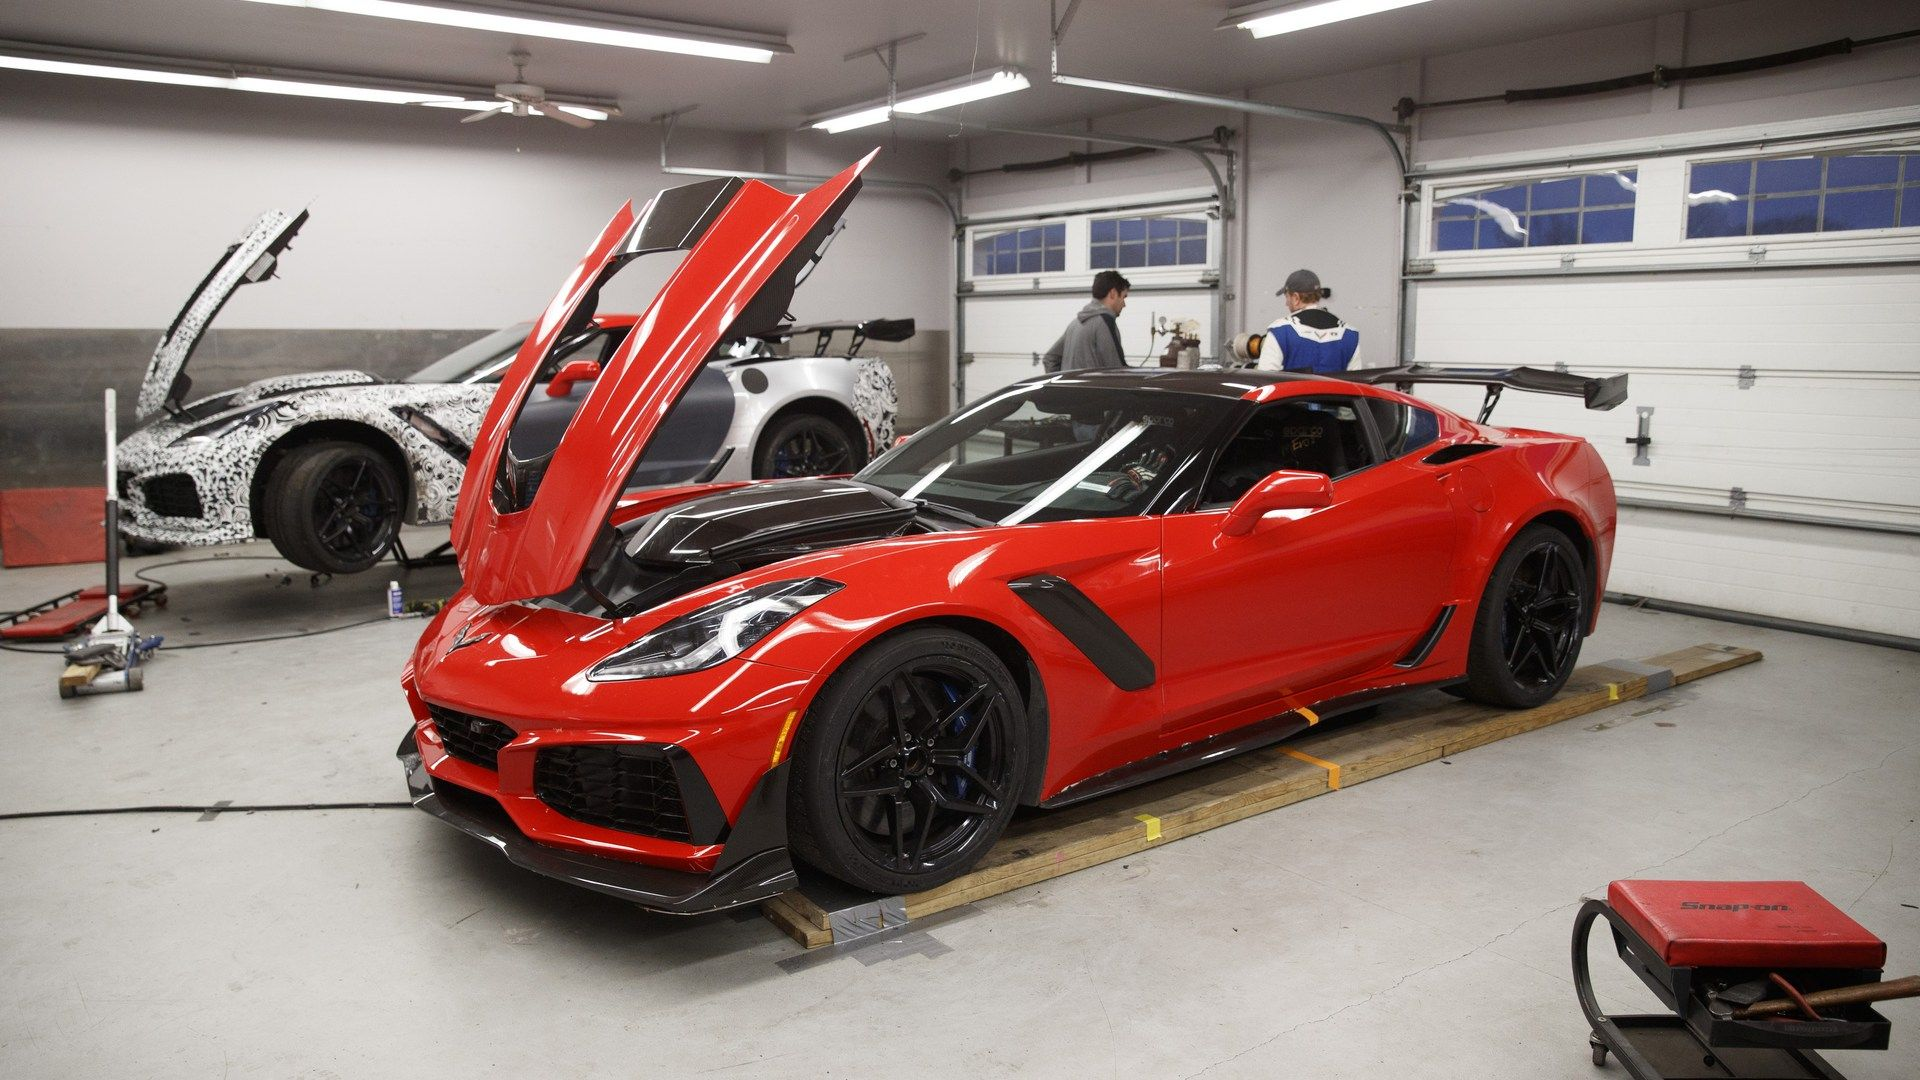 2019 Corvette Zr1 Beats The Ford Gt To Claim New Lap Record At Vir